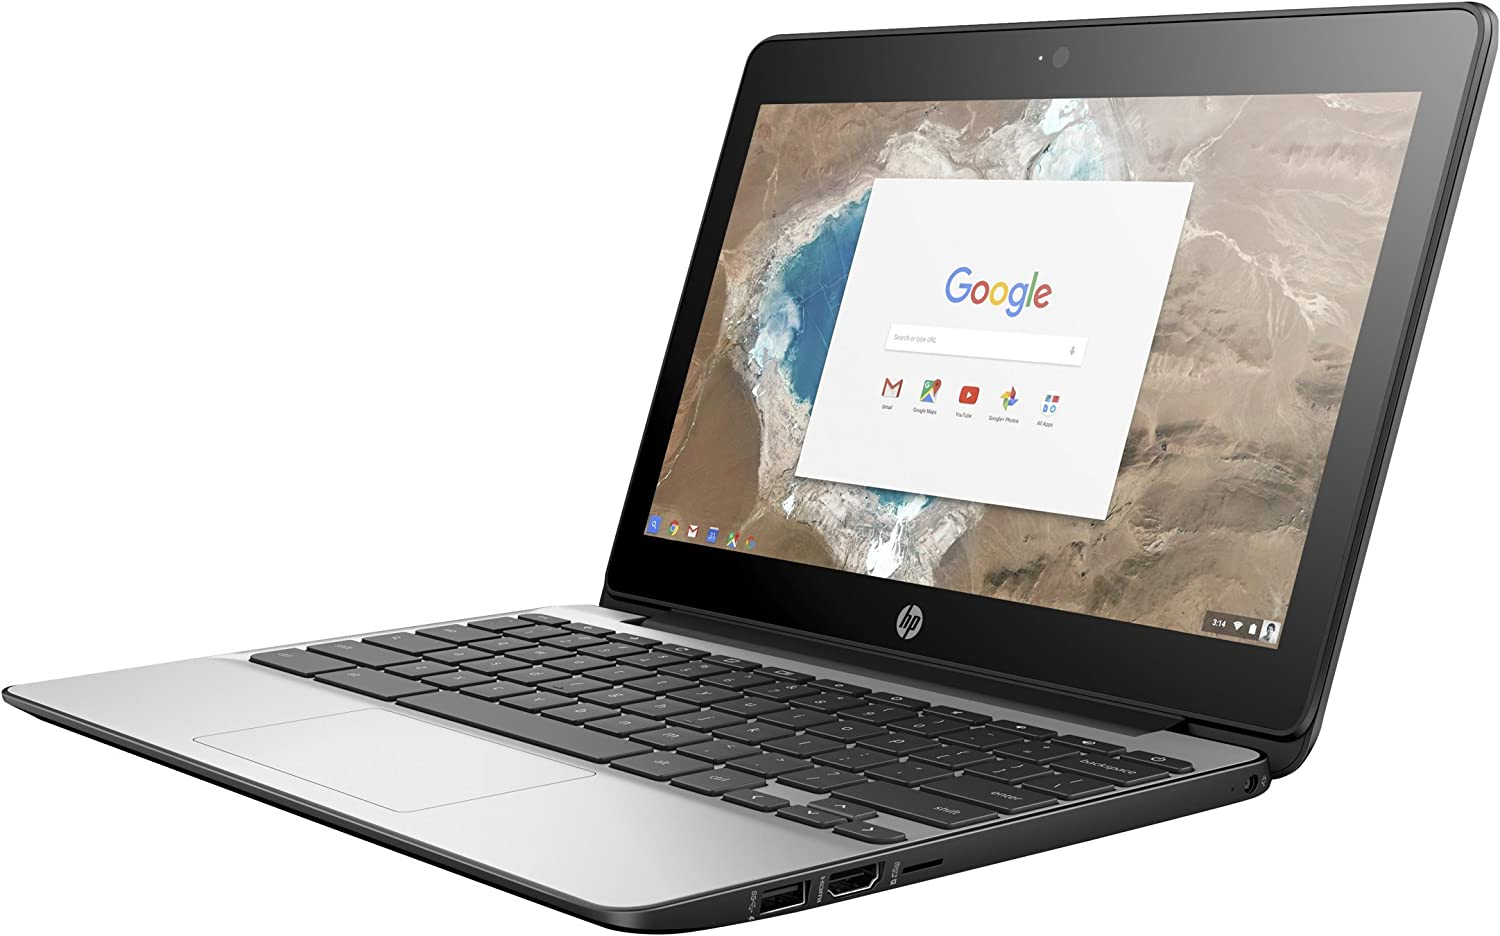 HP Chromebook 11 G5 11.6 inches Chromebook - Intel Celeron N3050 Dual-core (2 Core) 1.60 GHz (Renewed)